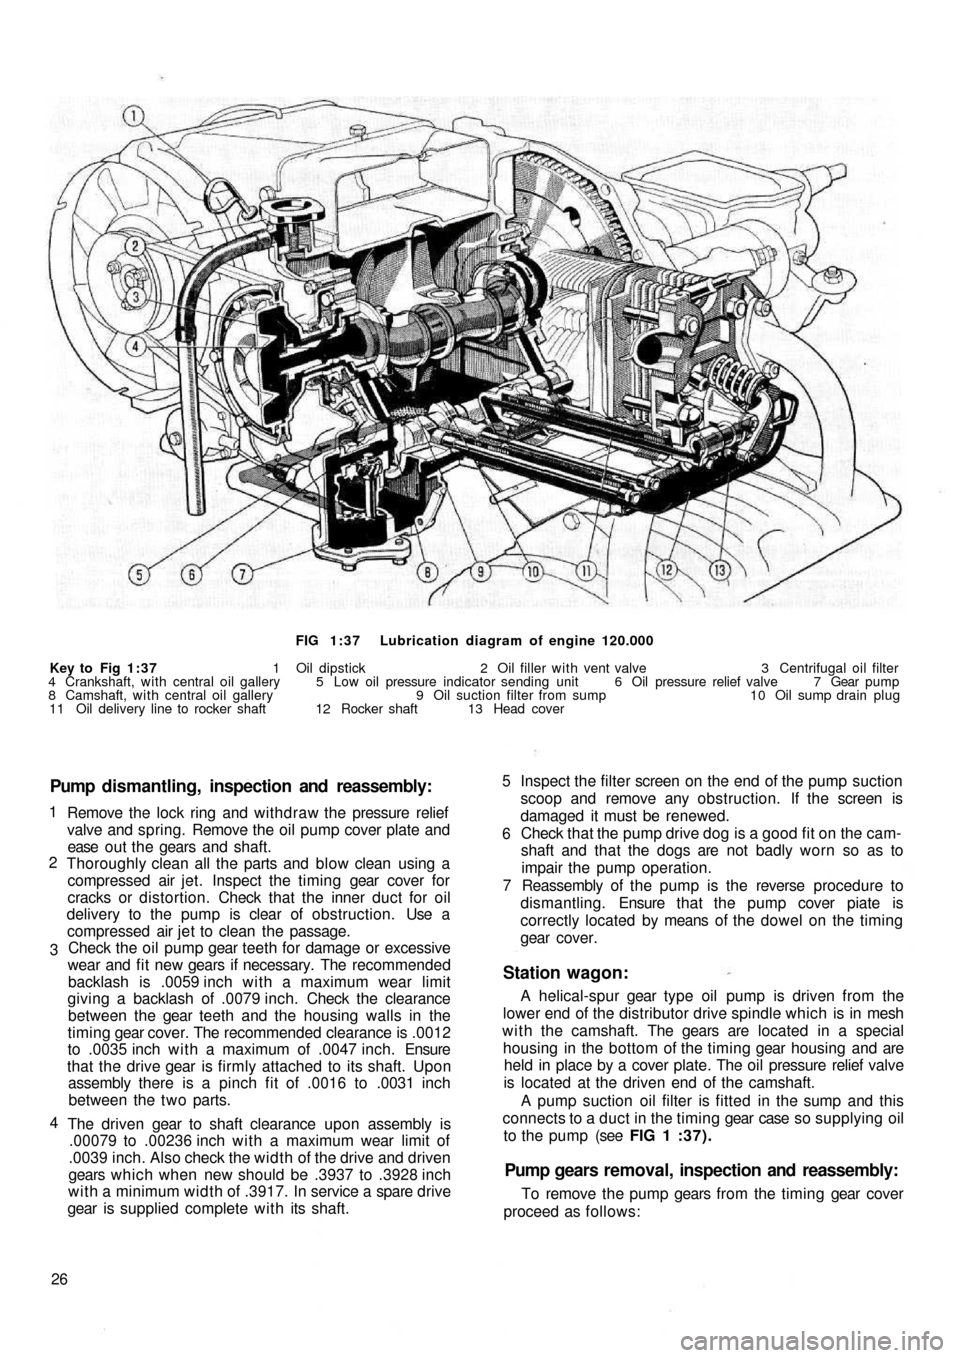 Fiat 500 Engine Diagram : 23 Wiring Diagram Images